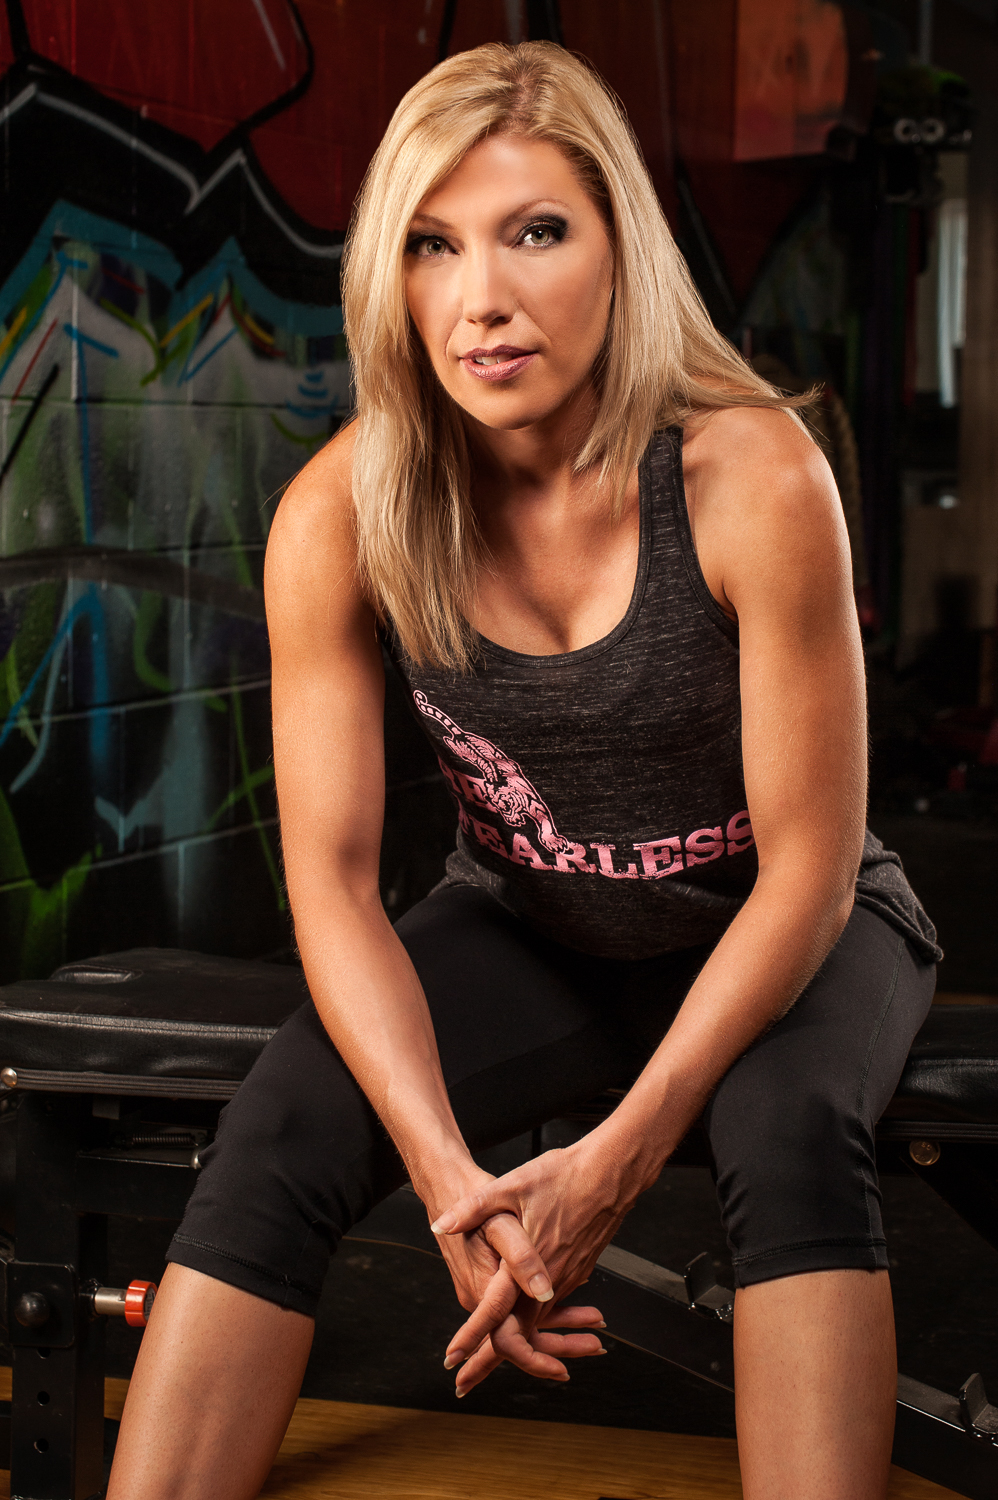 Hamilton Toronto Fitness Photographer - Metamorfose Clothing Line  Be Fearless Black by Marek Michalek.jpg